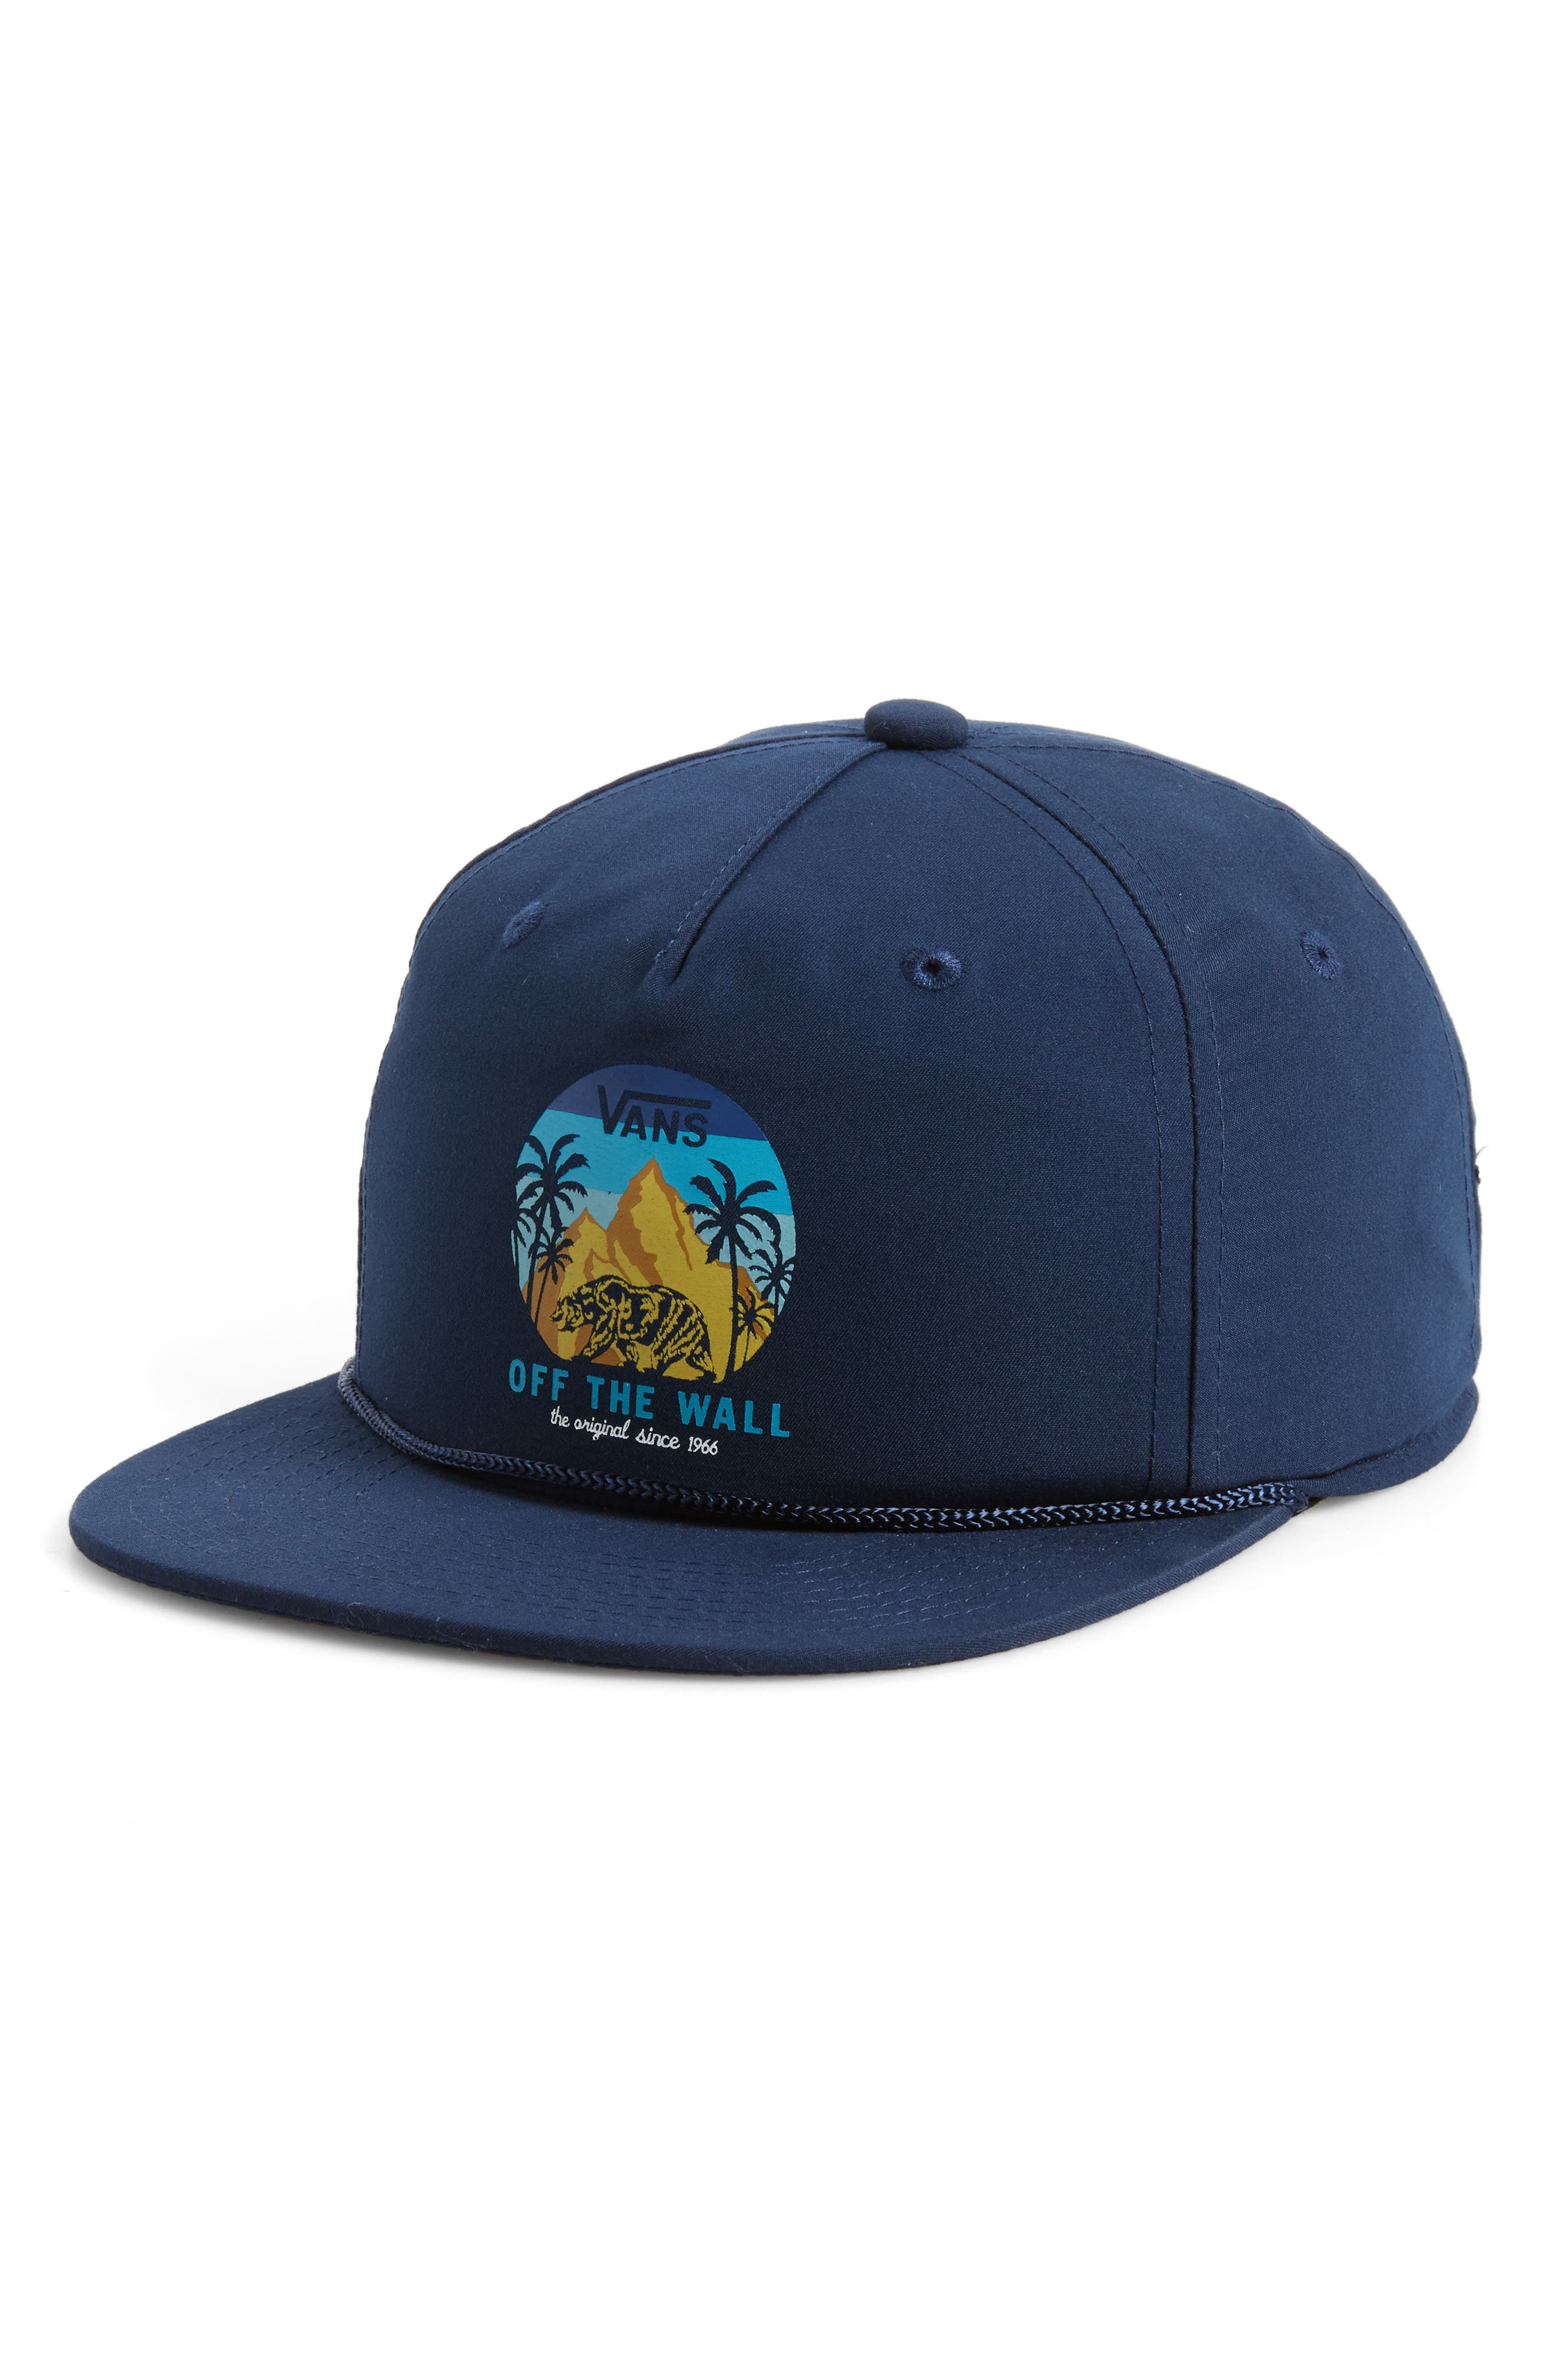 Vans California Dreamin' Unstructured Snapback Hat (Boys)